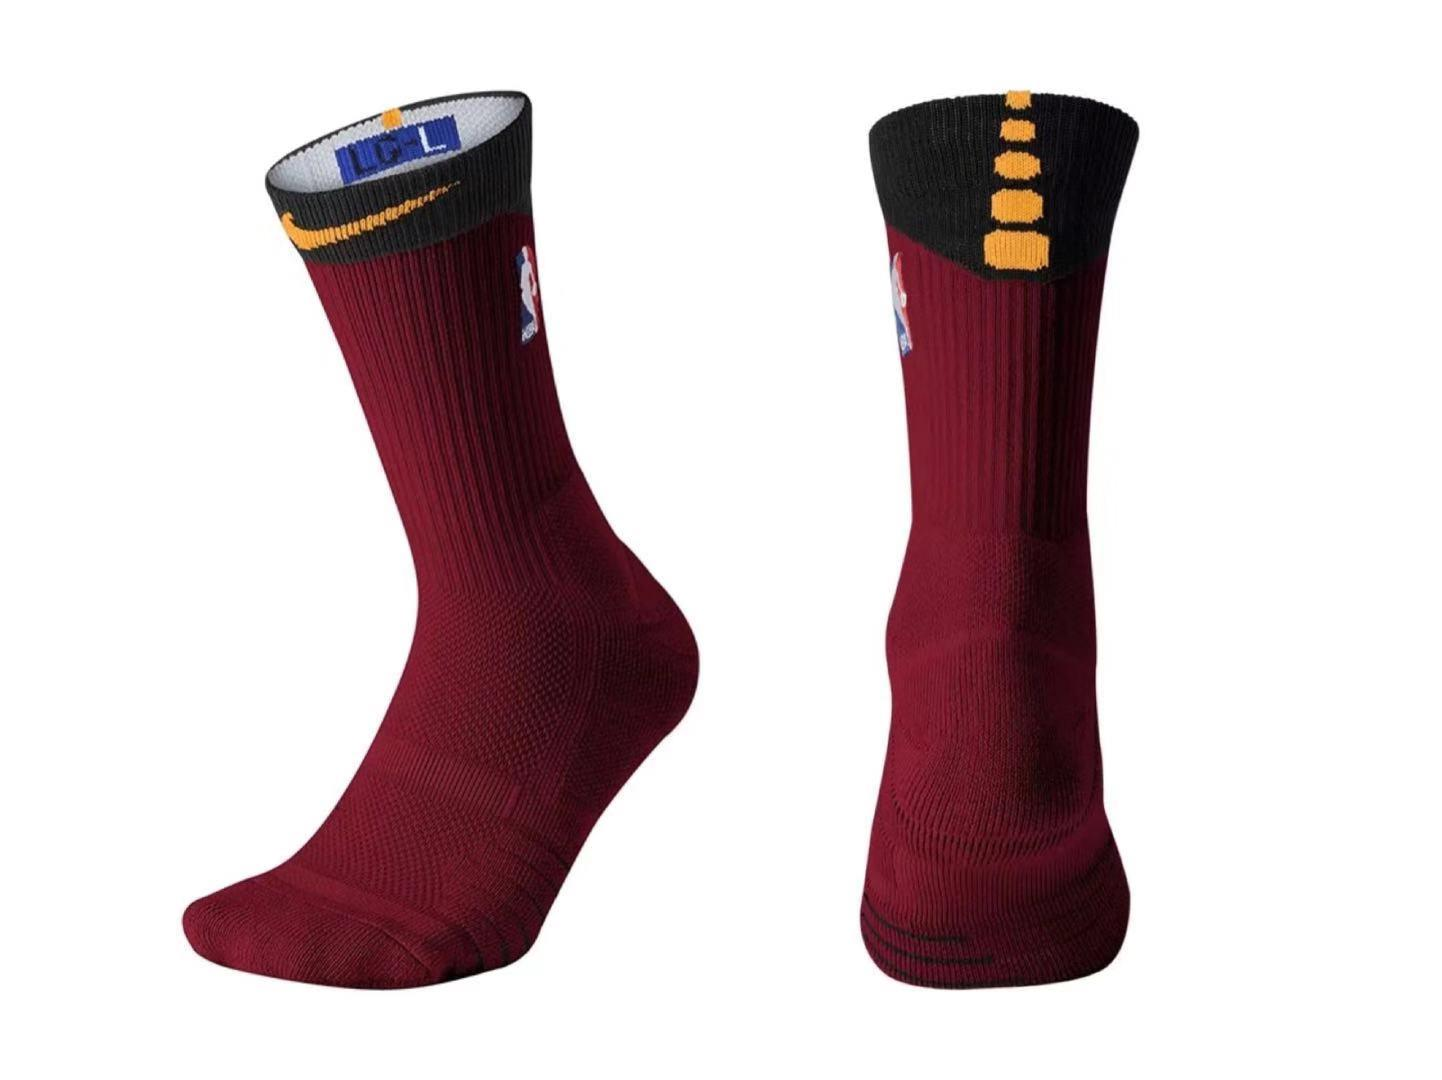 High Quality N*a Sport Basketball Socks By M&s.shop.